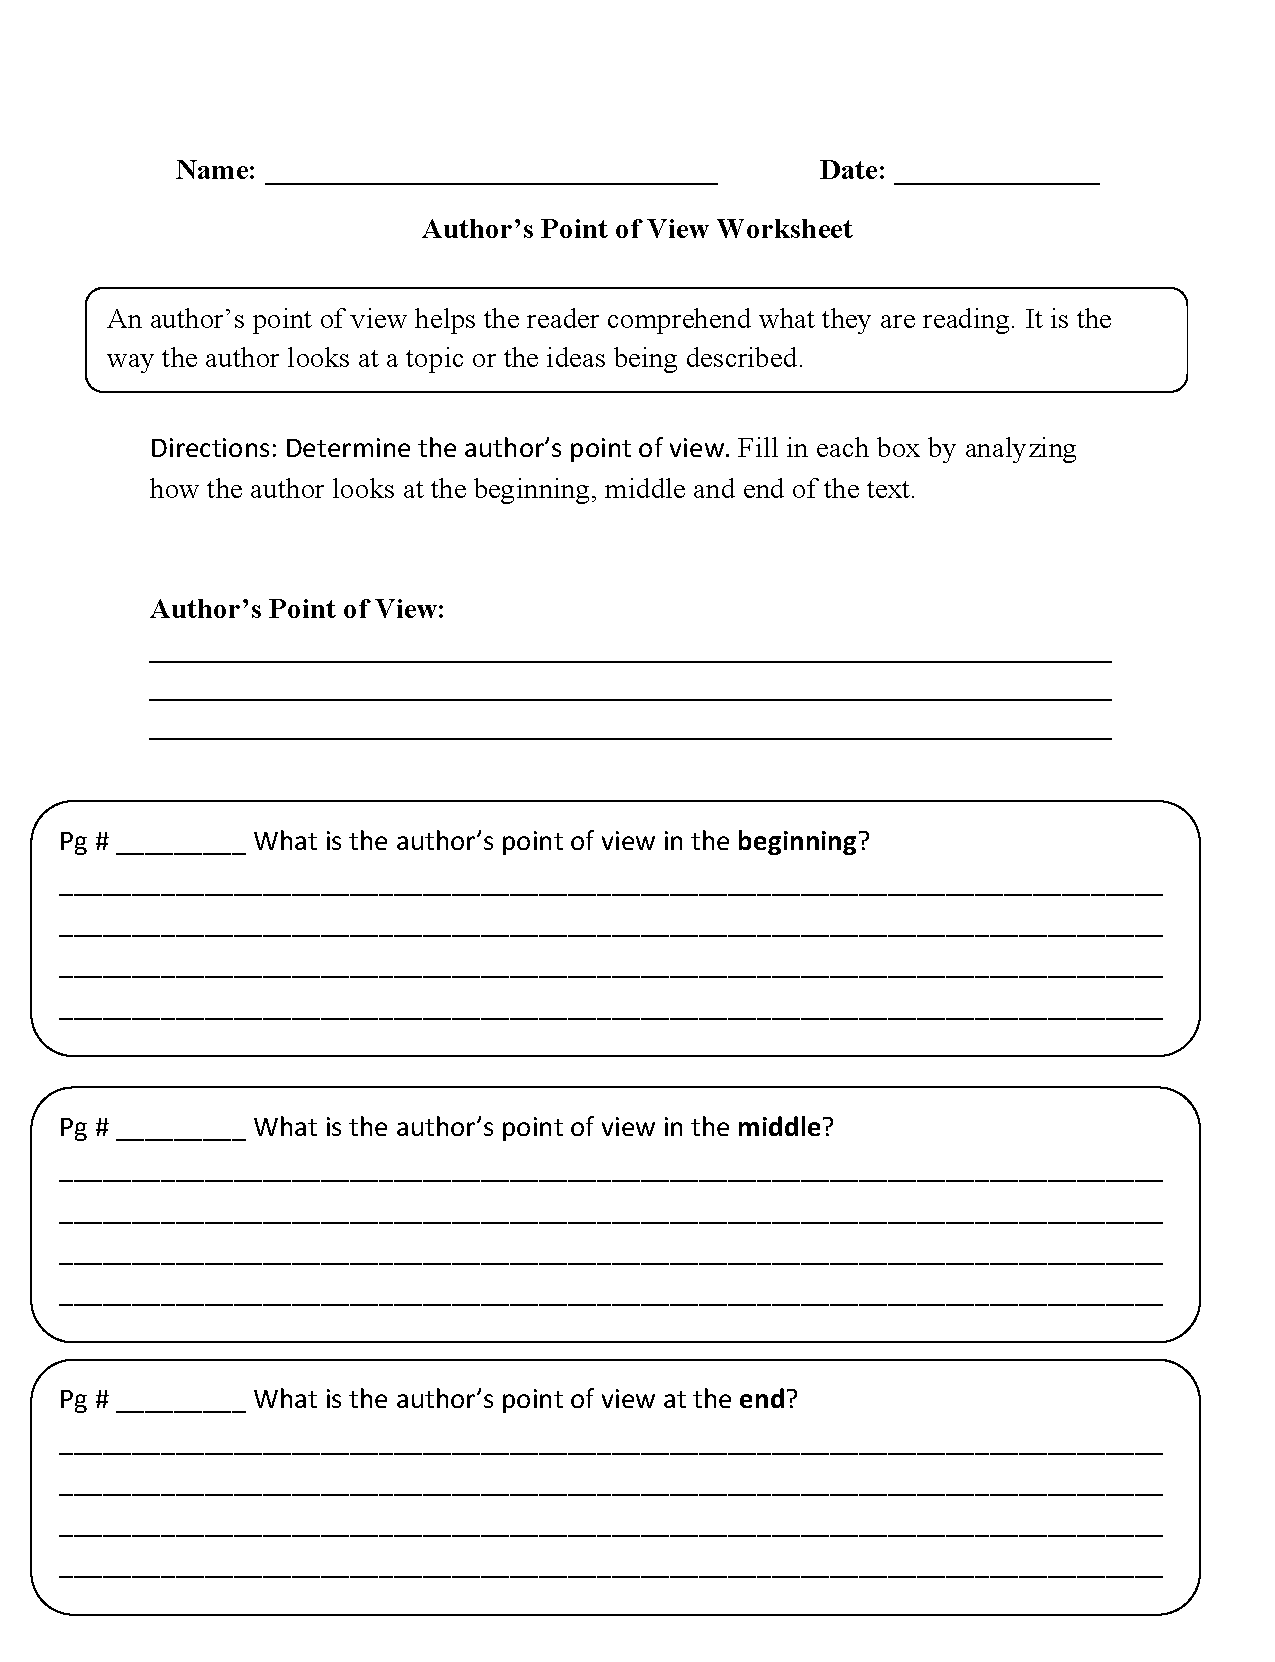 Weirdmailus  Fascinating Englishlinxcom  Point Of View Worksheets With Heavenly Point Of View Worksheets With Agreeable Tls Worksheet Also Spanish Preterite And Imperfect Practice Worksheets In Addition Th Grade  Digit Multiplication Worksheets And Expressions And Variables Worksheet As Well As Animal Worksheets For Nd Grade Additionally Word Problems With Percents Worksheets From Englishlinxcom With Weirdmailus  Heavenly Englishlinxcom  Point Of View Worksheets With Agreeable Point Of View Worksheets And Fascinating Tls Worksheet Also Spanish Preterite And Imperfect Practice Worksheets In Addition Th Grade  Digit Multiplication Worksheets From Englishlinxcom